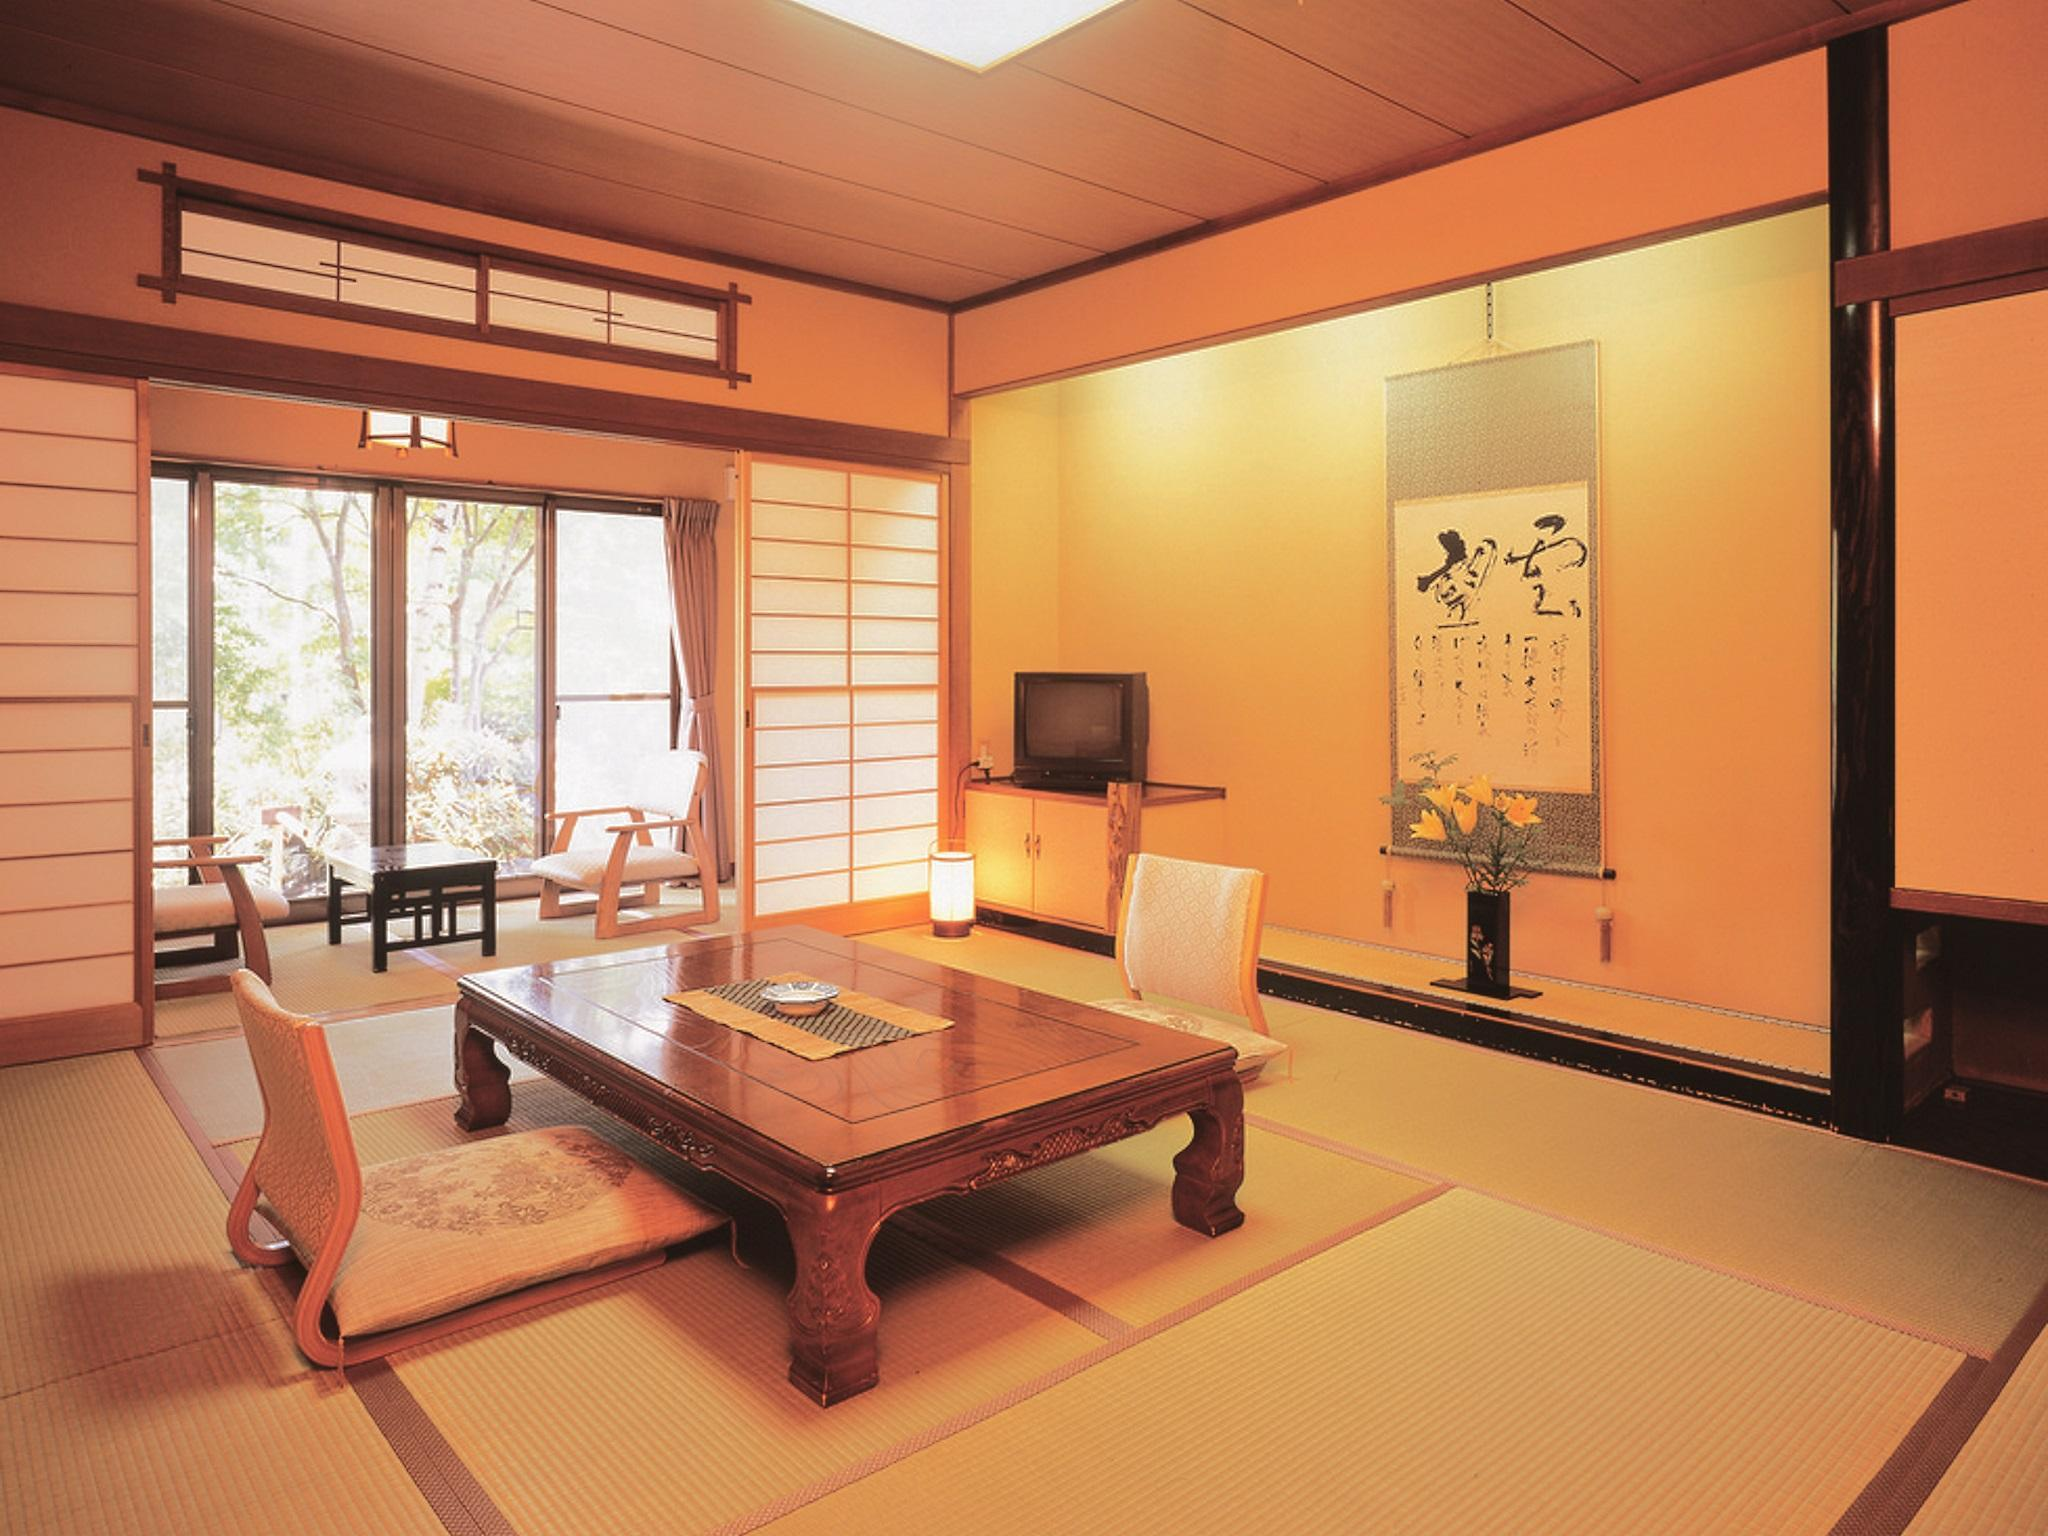 舒適日式客房 - 需共用衛浴/附早餐 (Comfort Japanese Style Room with Shared Bathroom - Breakfast Included)